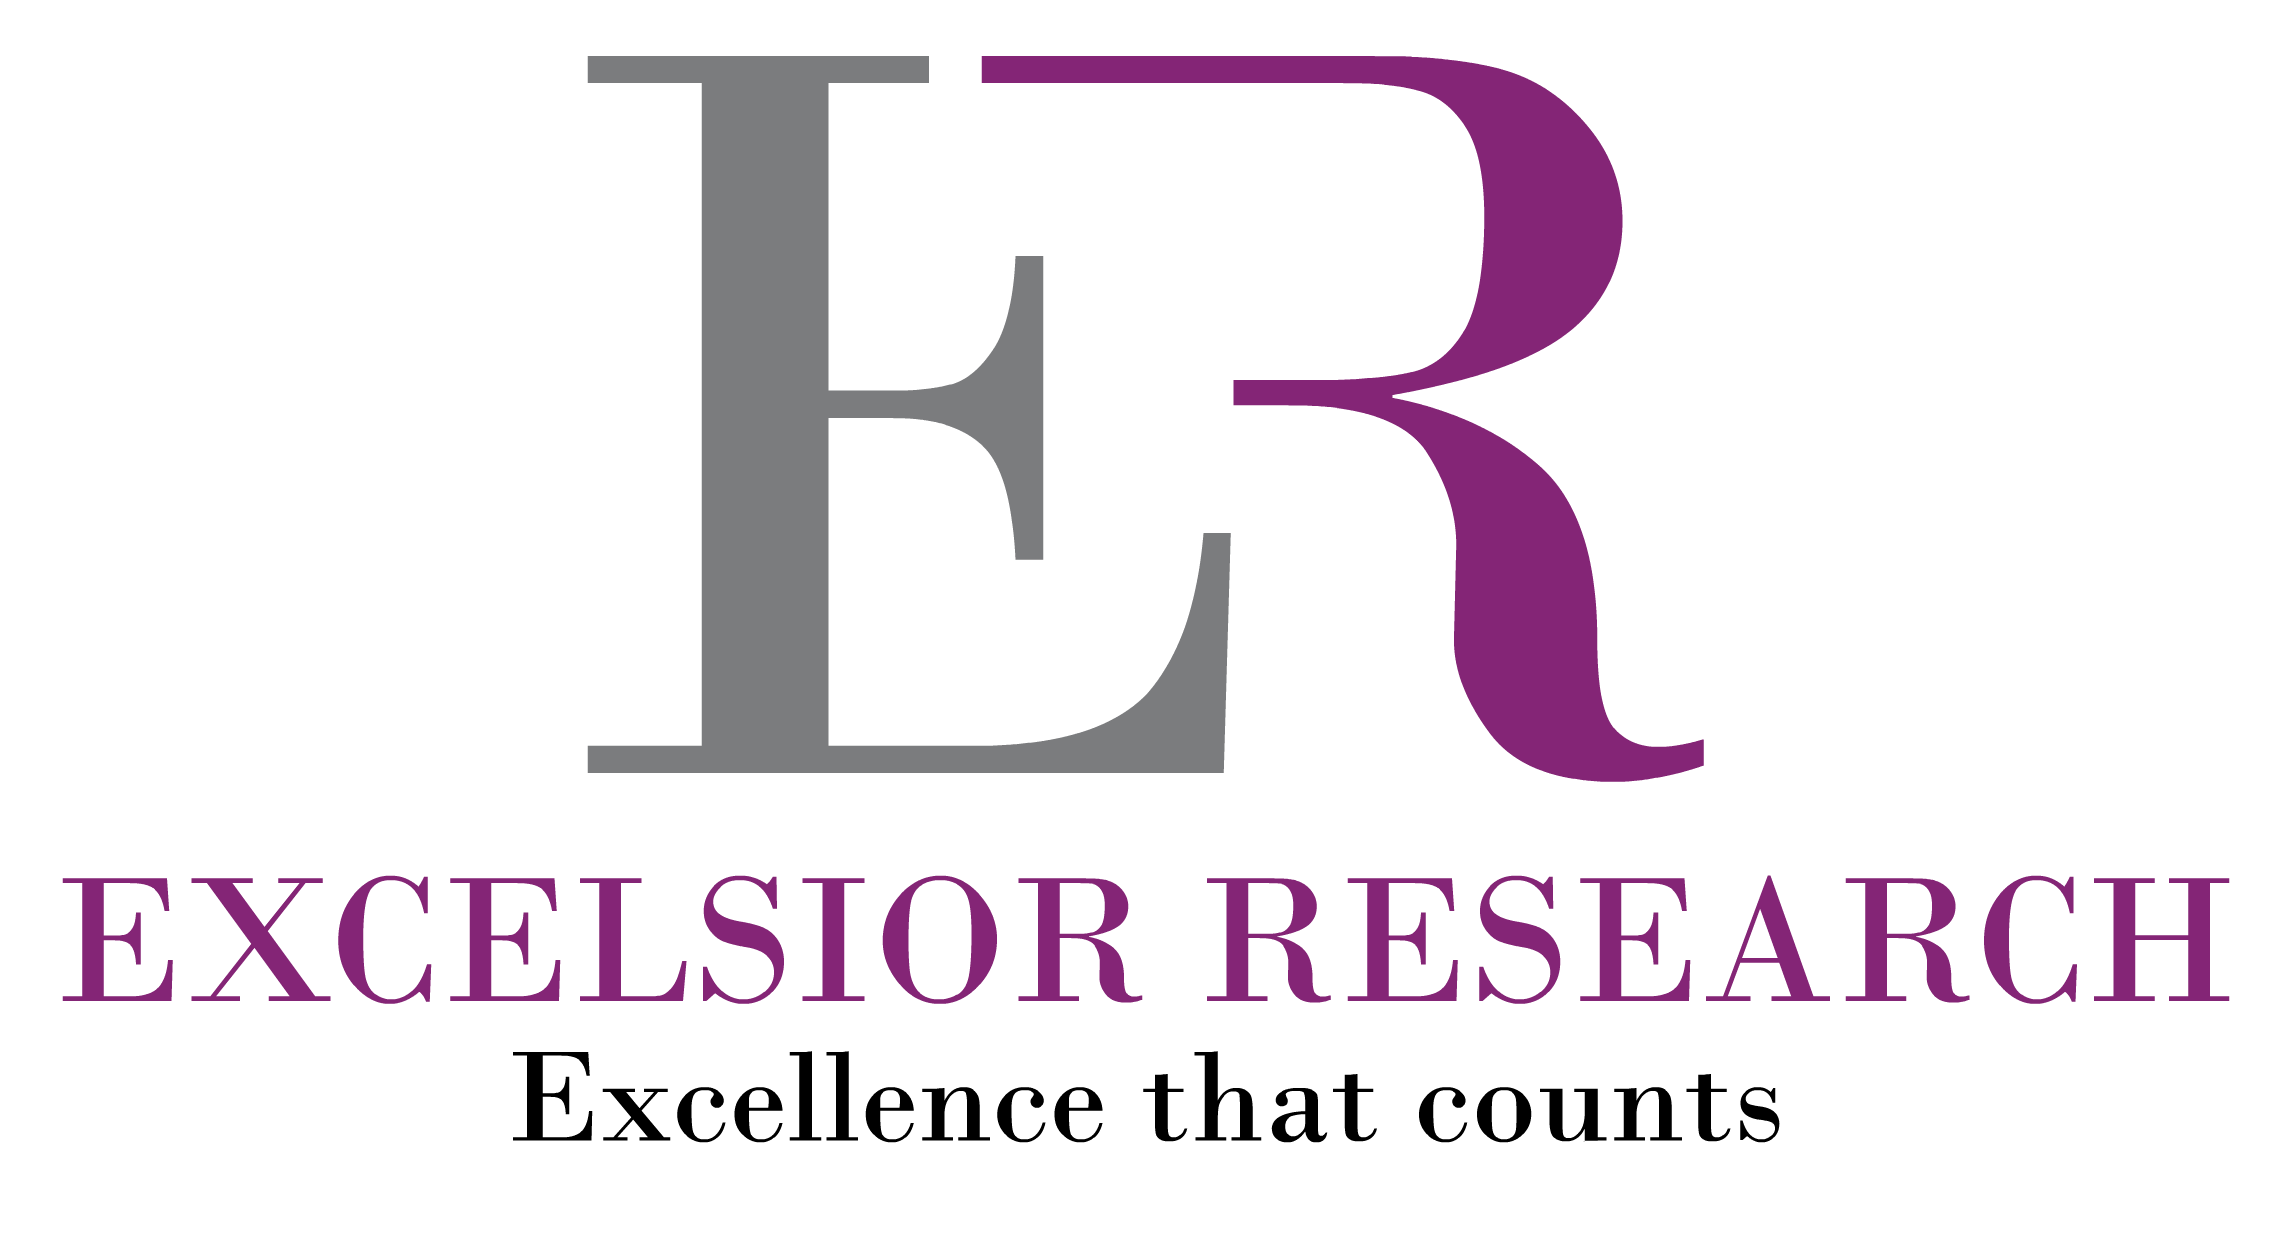 EXCELSIOR RESEARCH LOGO